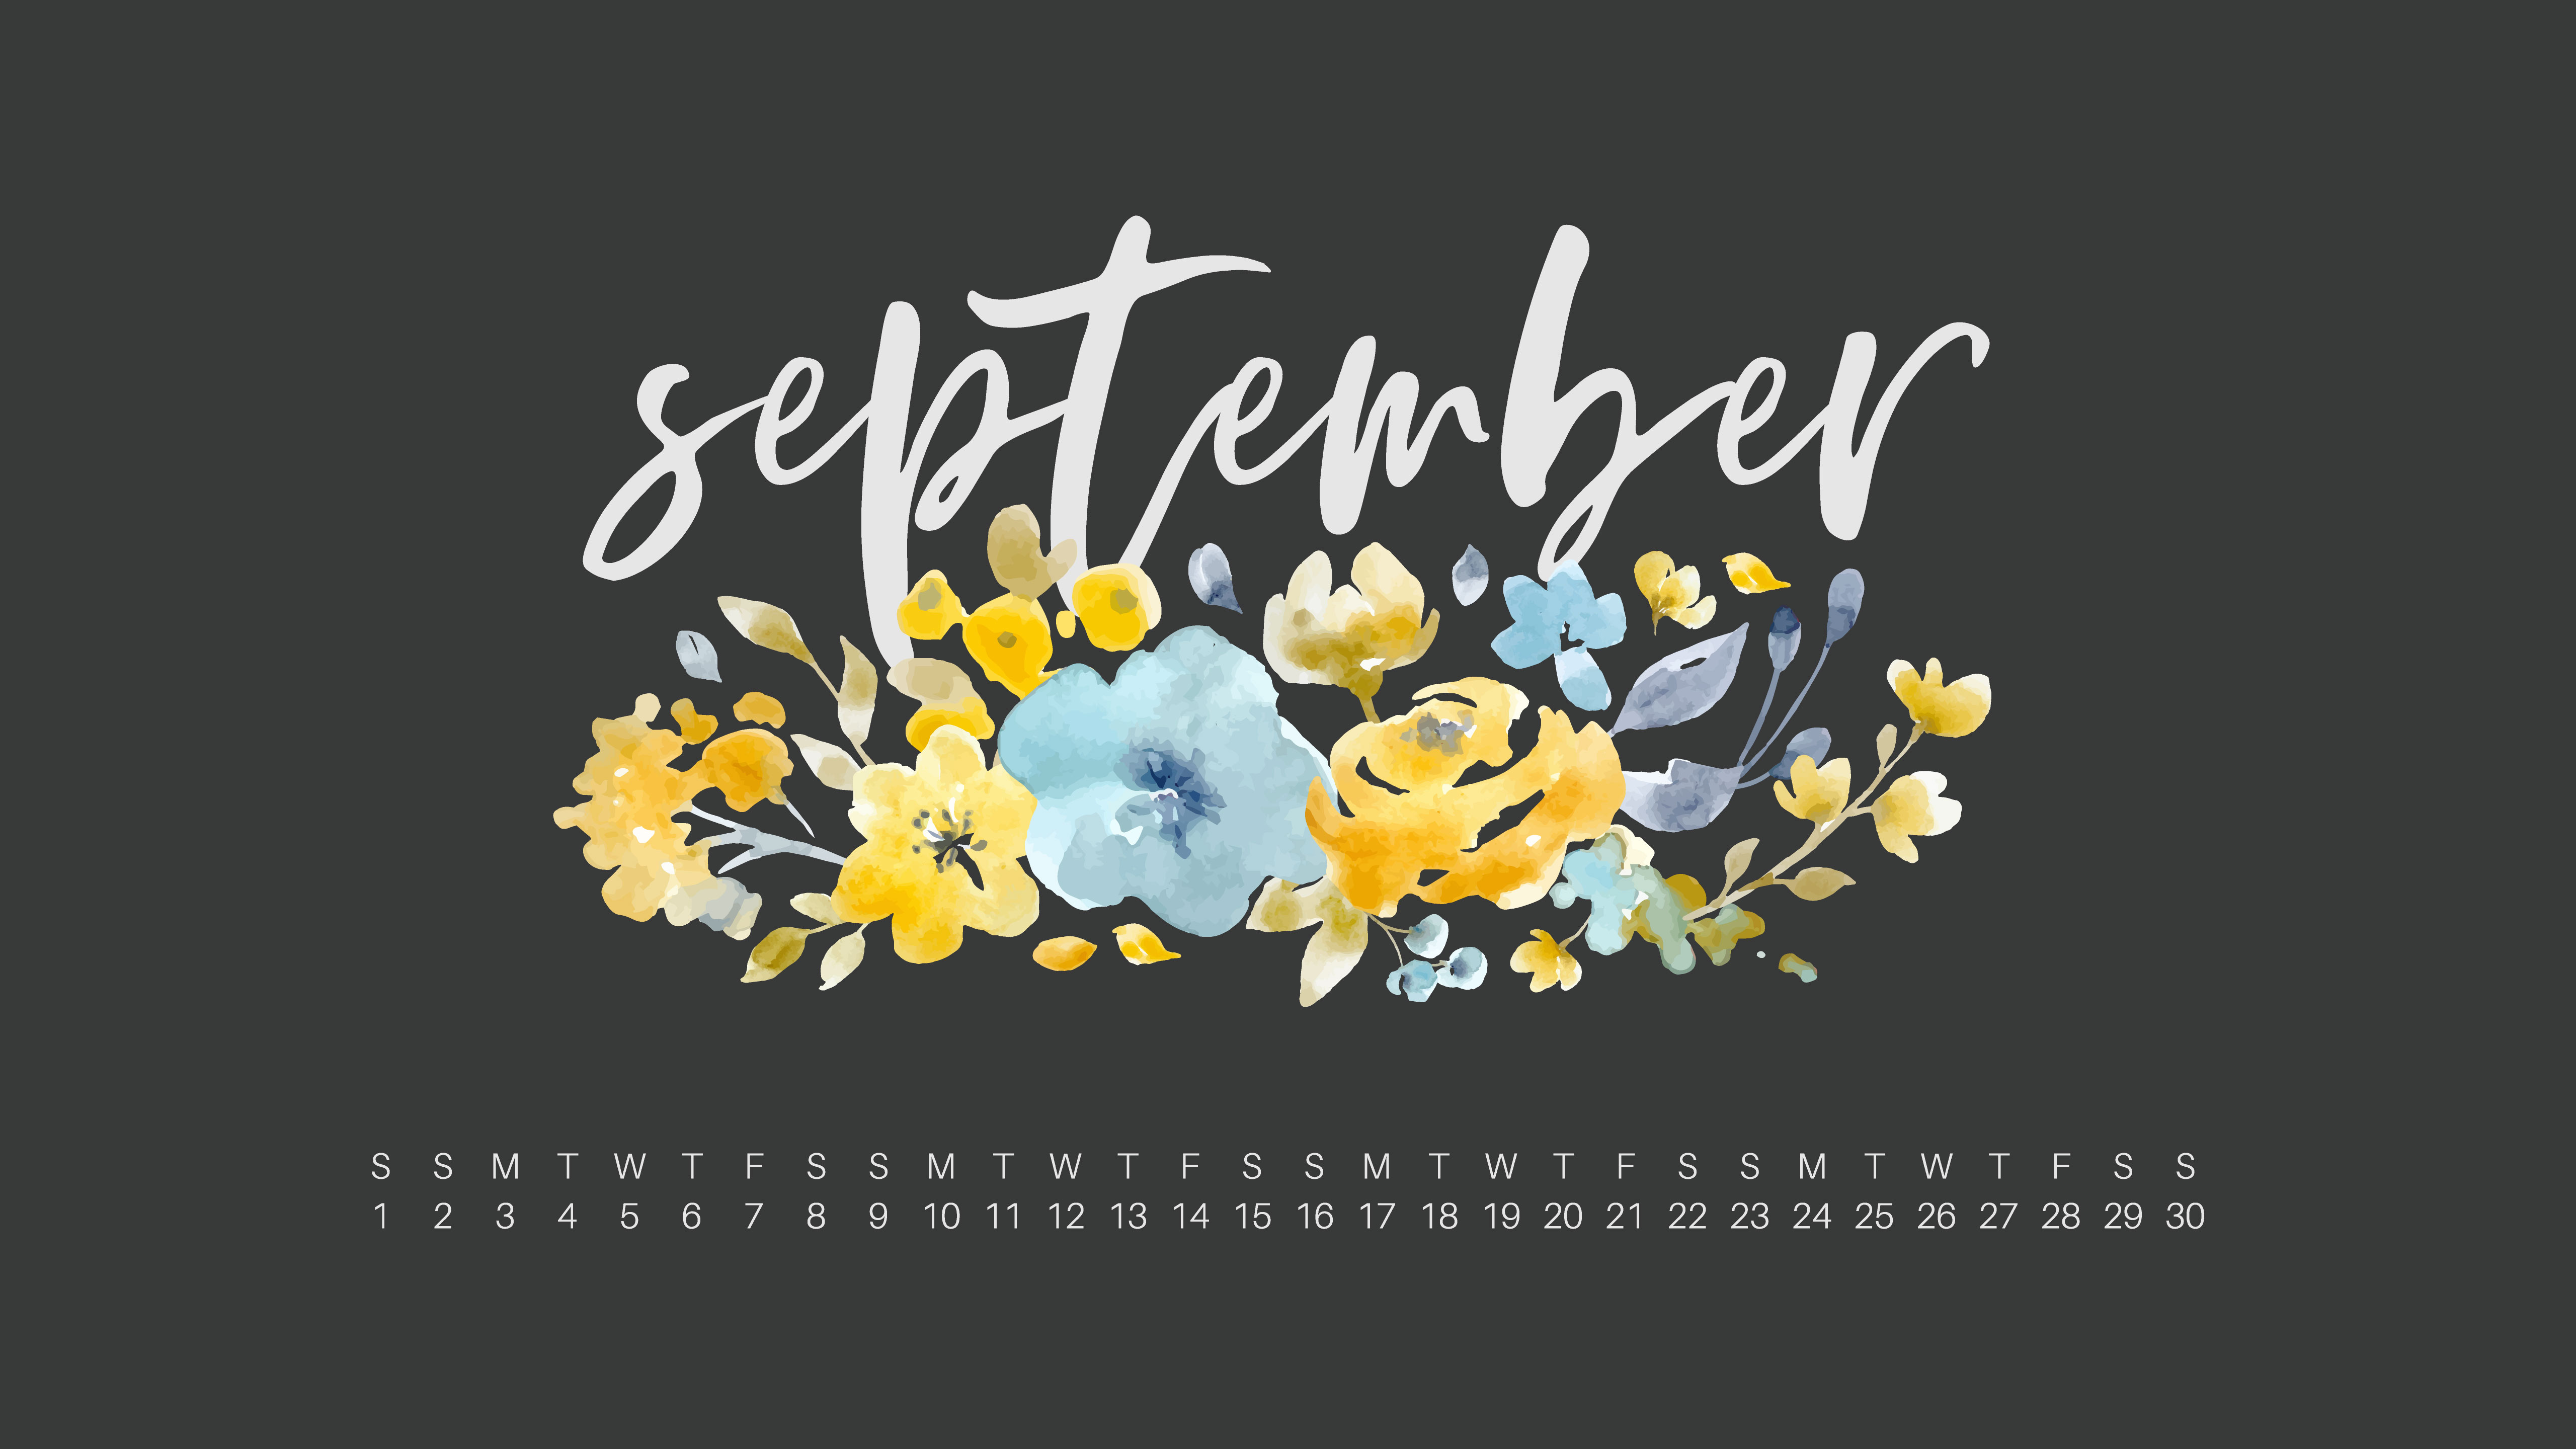 September 2018 Desktop Calendar Wallpaper UpperCase Designs 5120x2880